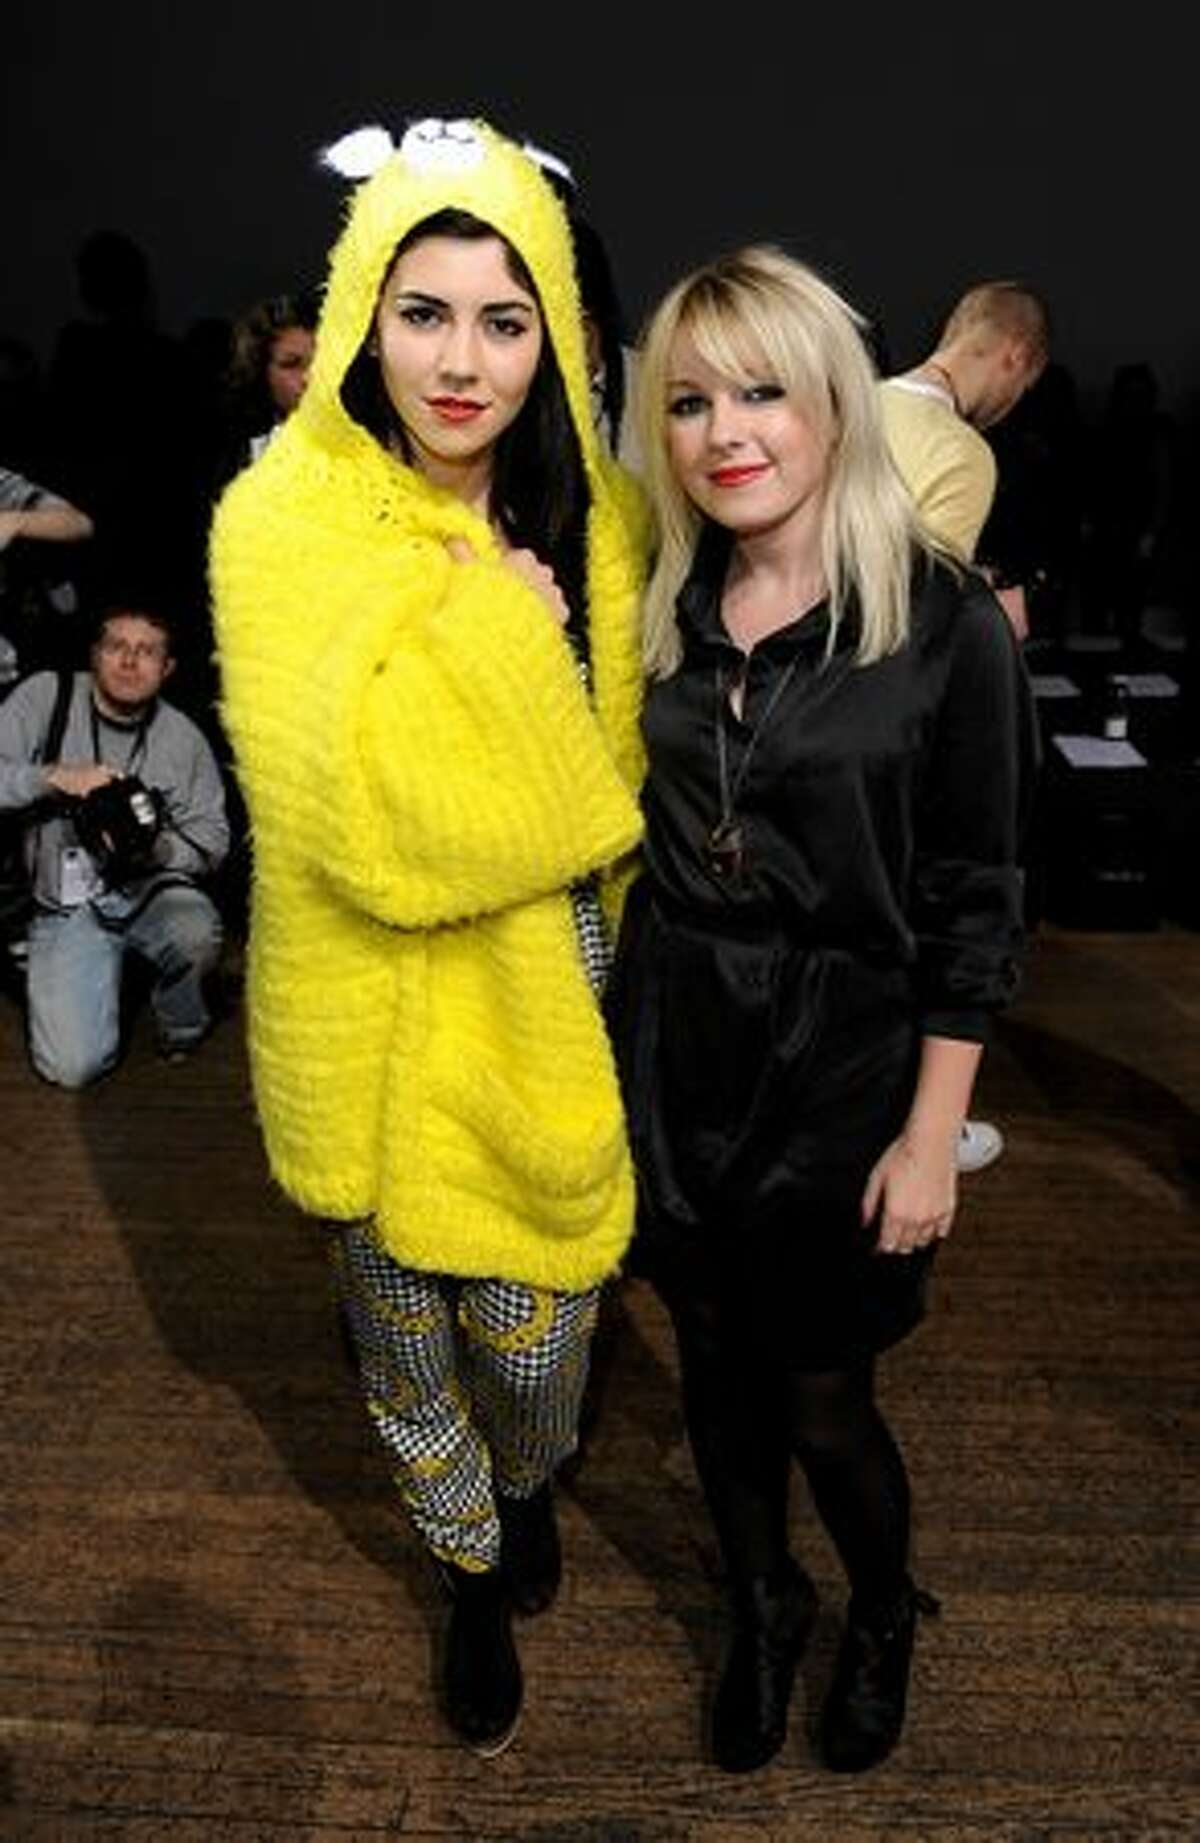 (L-R) Marina Diamandis and Little Boots attend the House of Holland fashion show during London Fashion Week in London, England.